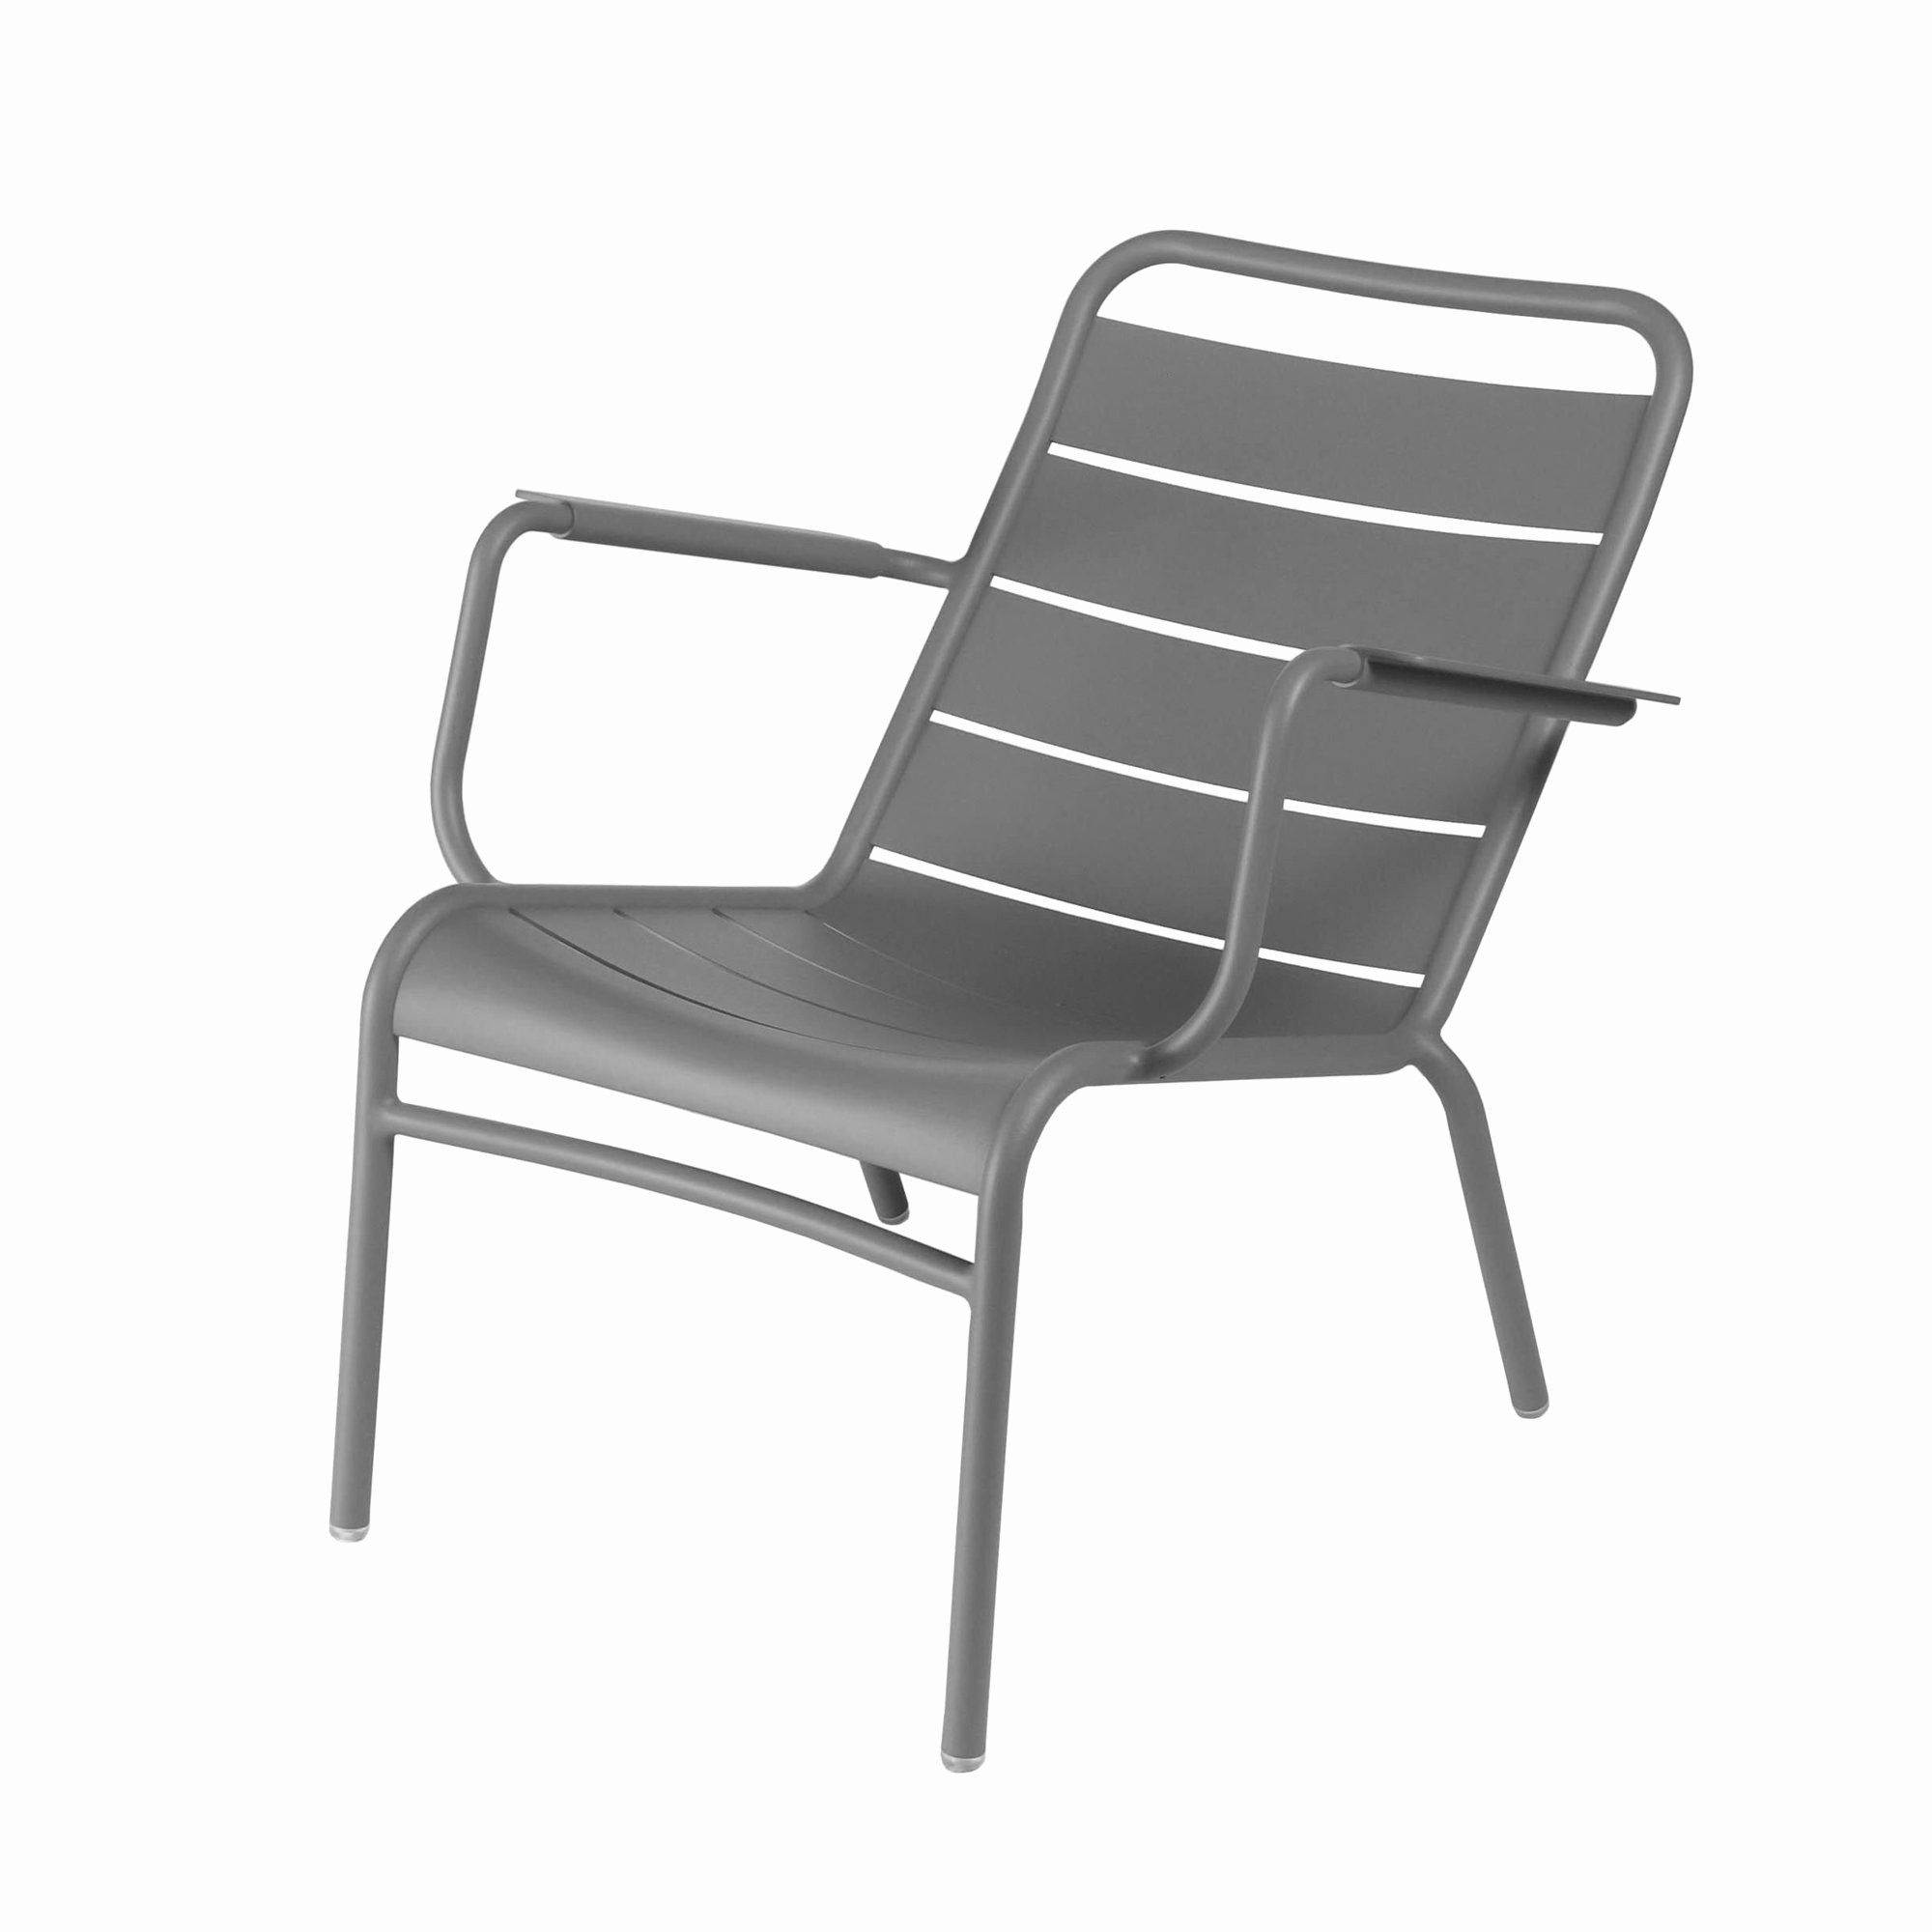 Dessus De Chaise Gifi Beau Image Gifi Chaise Scandinave Centralillaw